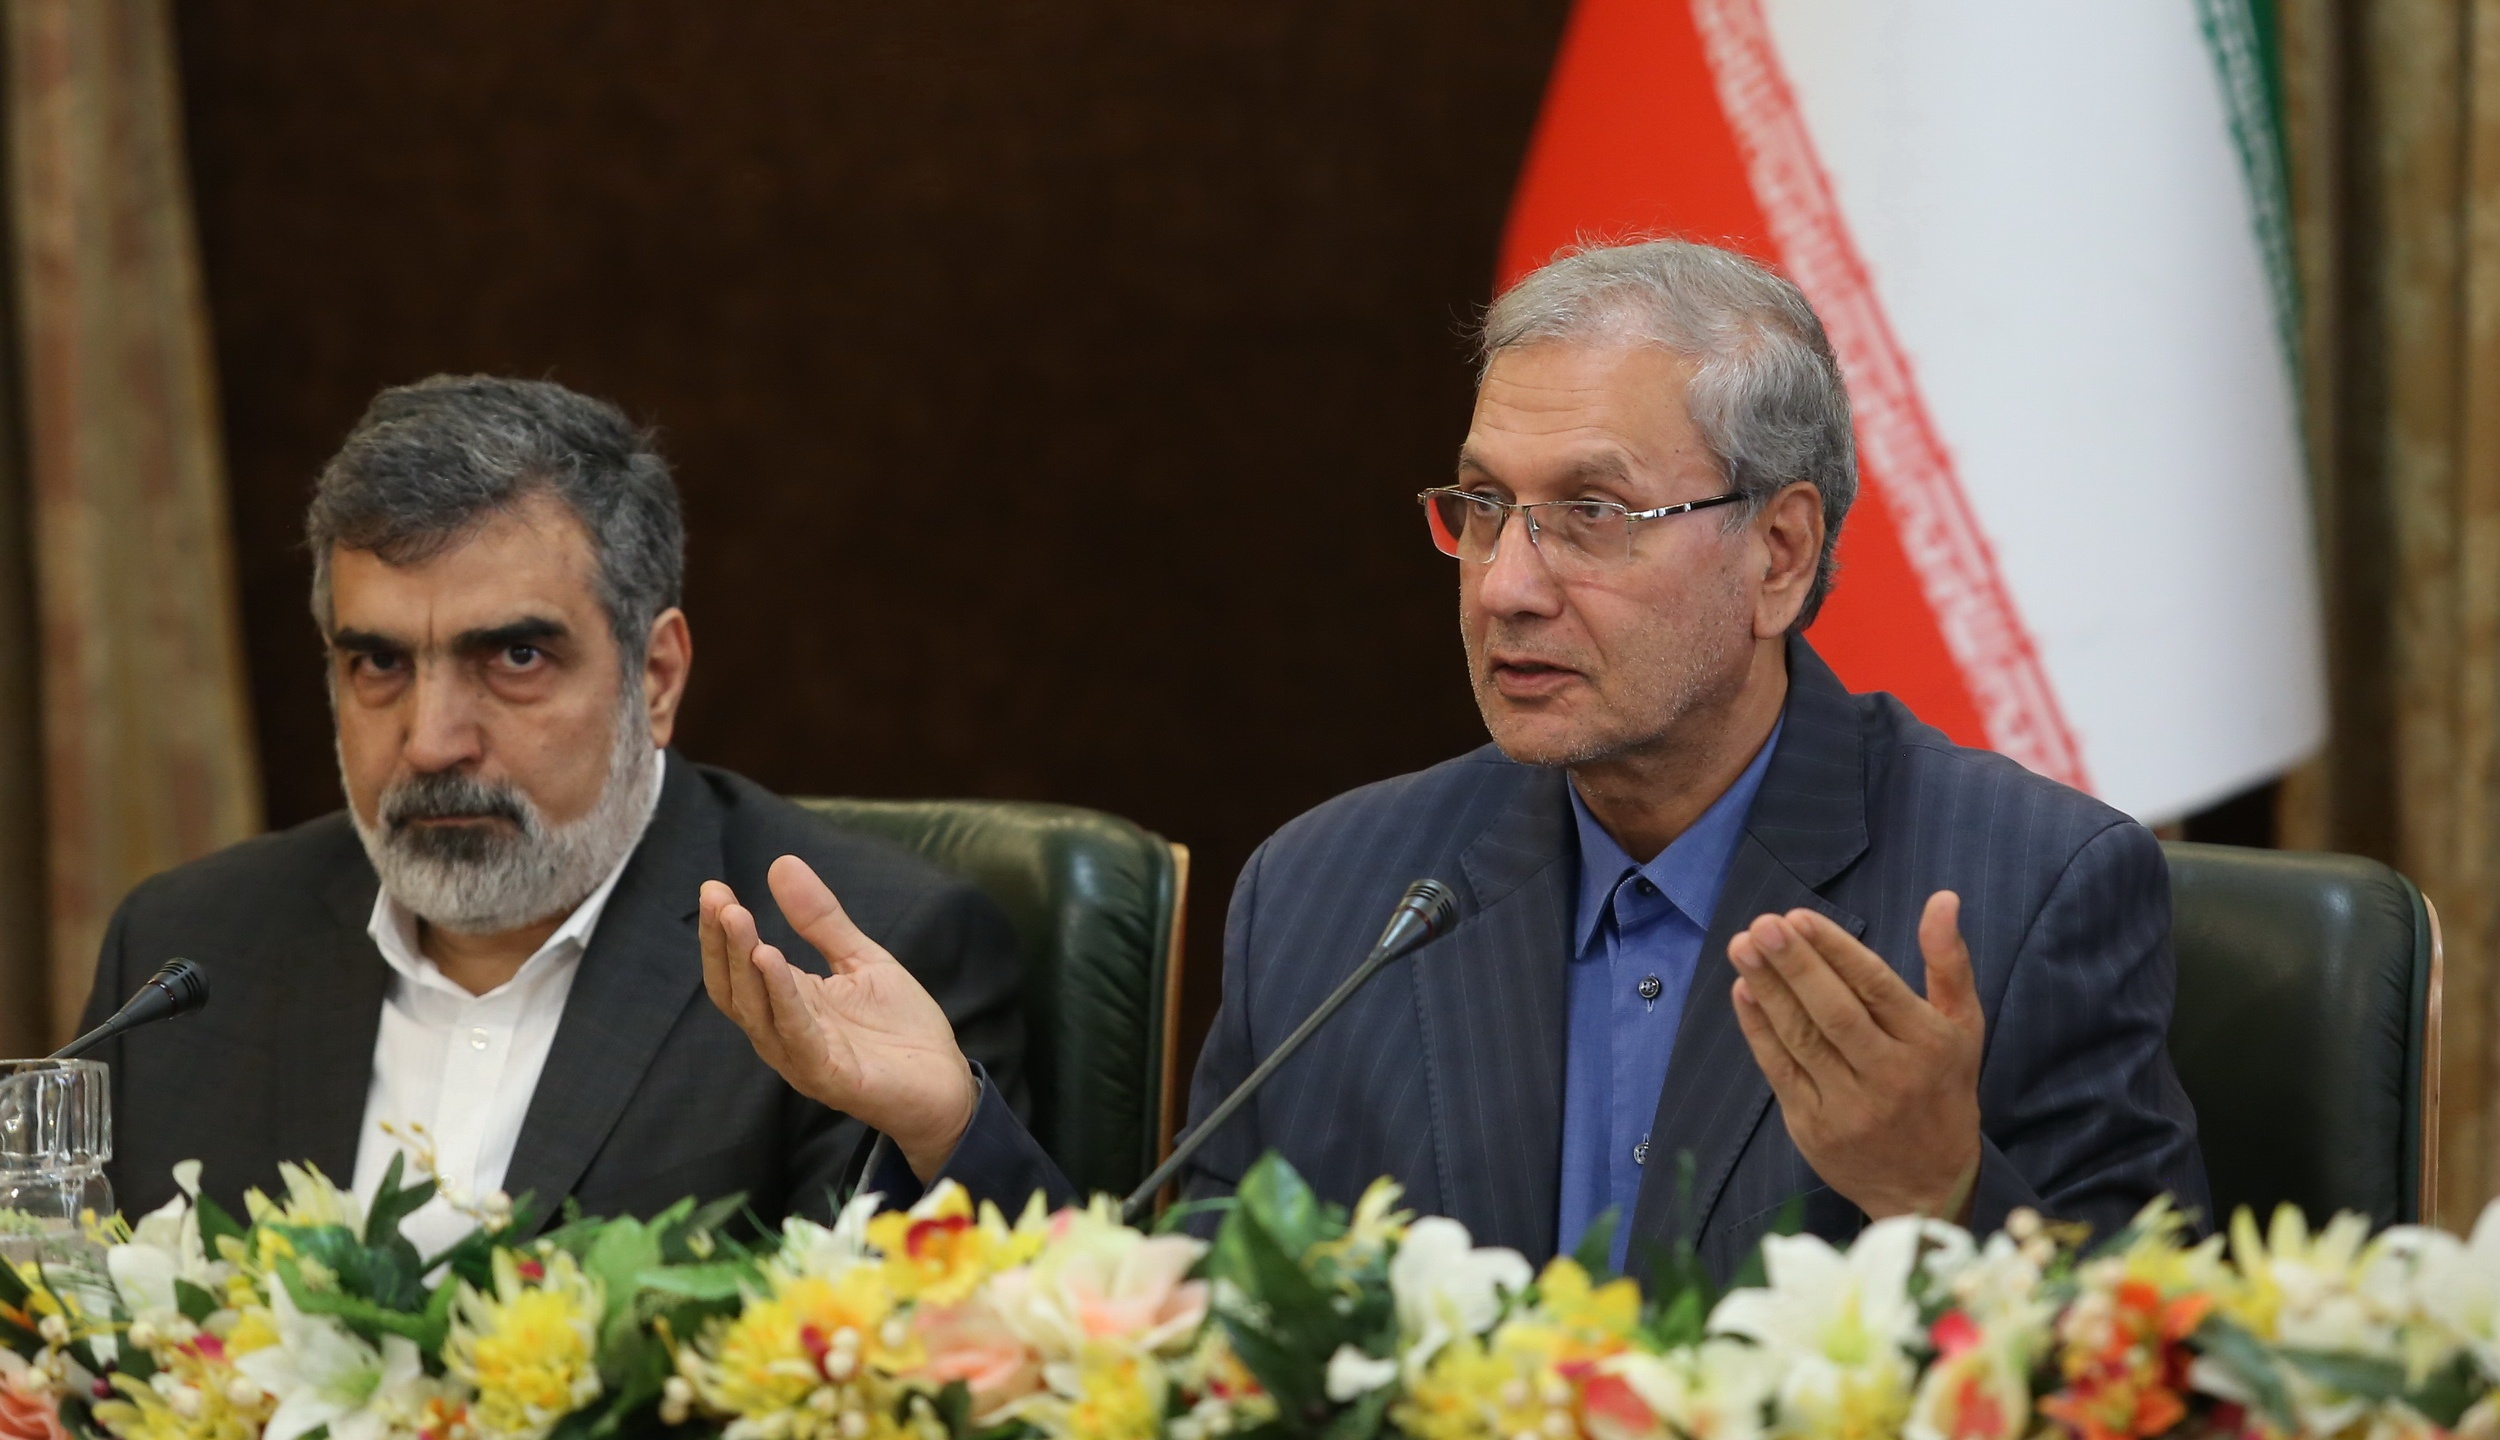 A handout picture provided by the Iranian presidency on July 7, 2019 shows (left to right) Iran's Atomic Energy Organization spokesman Behrouz Kamalvandi and government spokesman Ali Rabiei giving a joint press conference at the presidential headquarters in Tehran. (Credit: AFP/Getty Images)